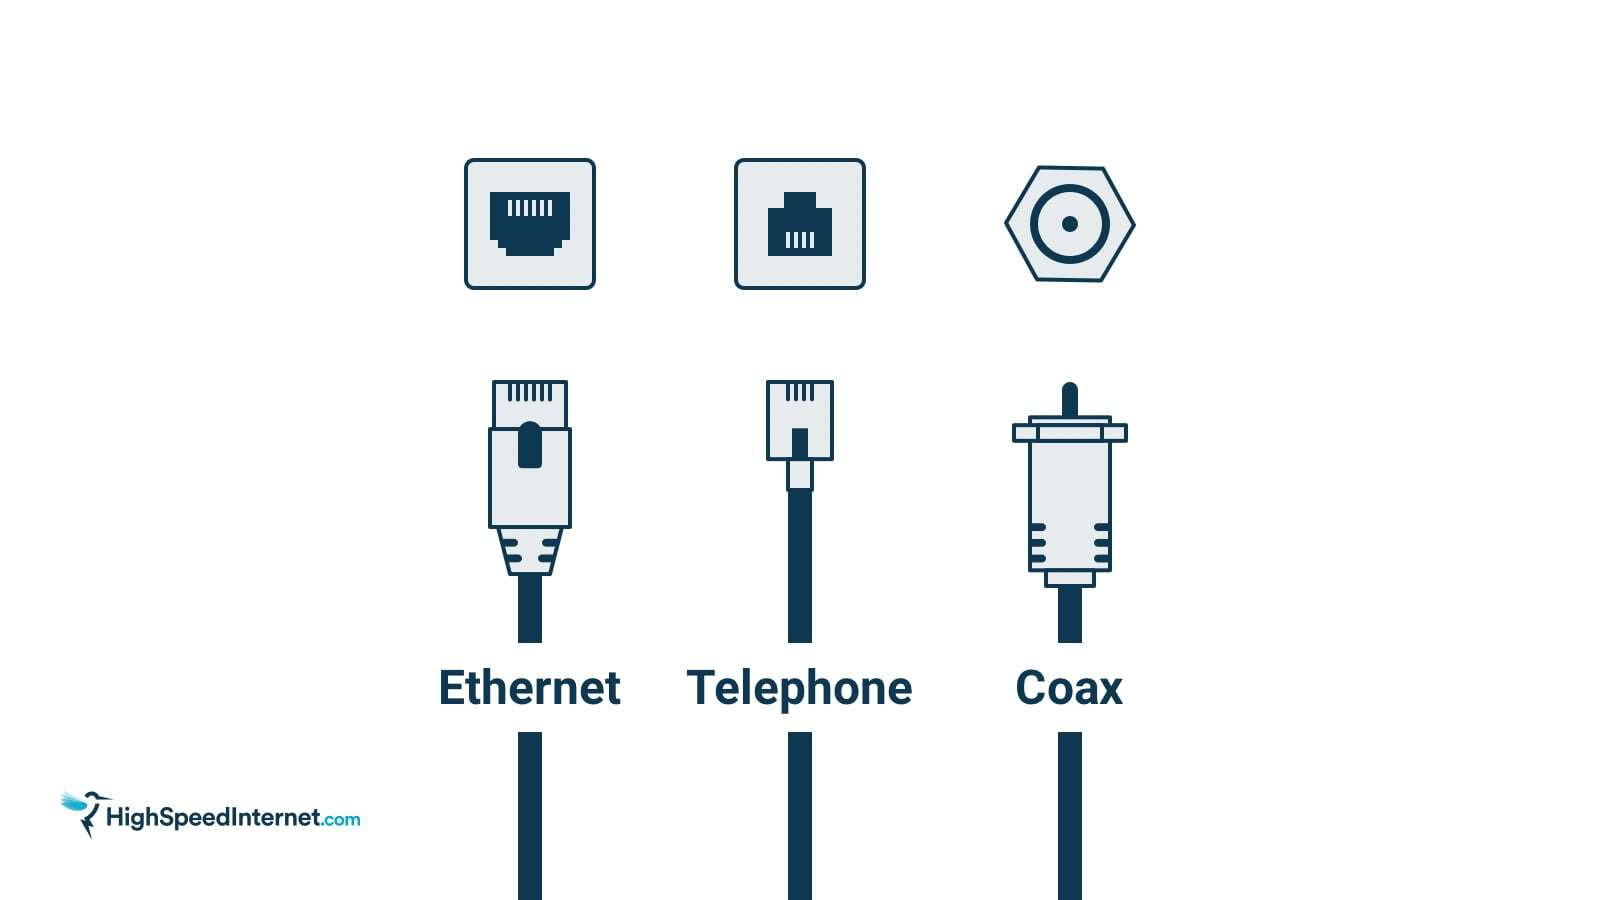 Three types of cables: Ethernet, Telephone, and Coaxial